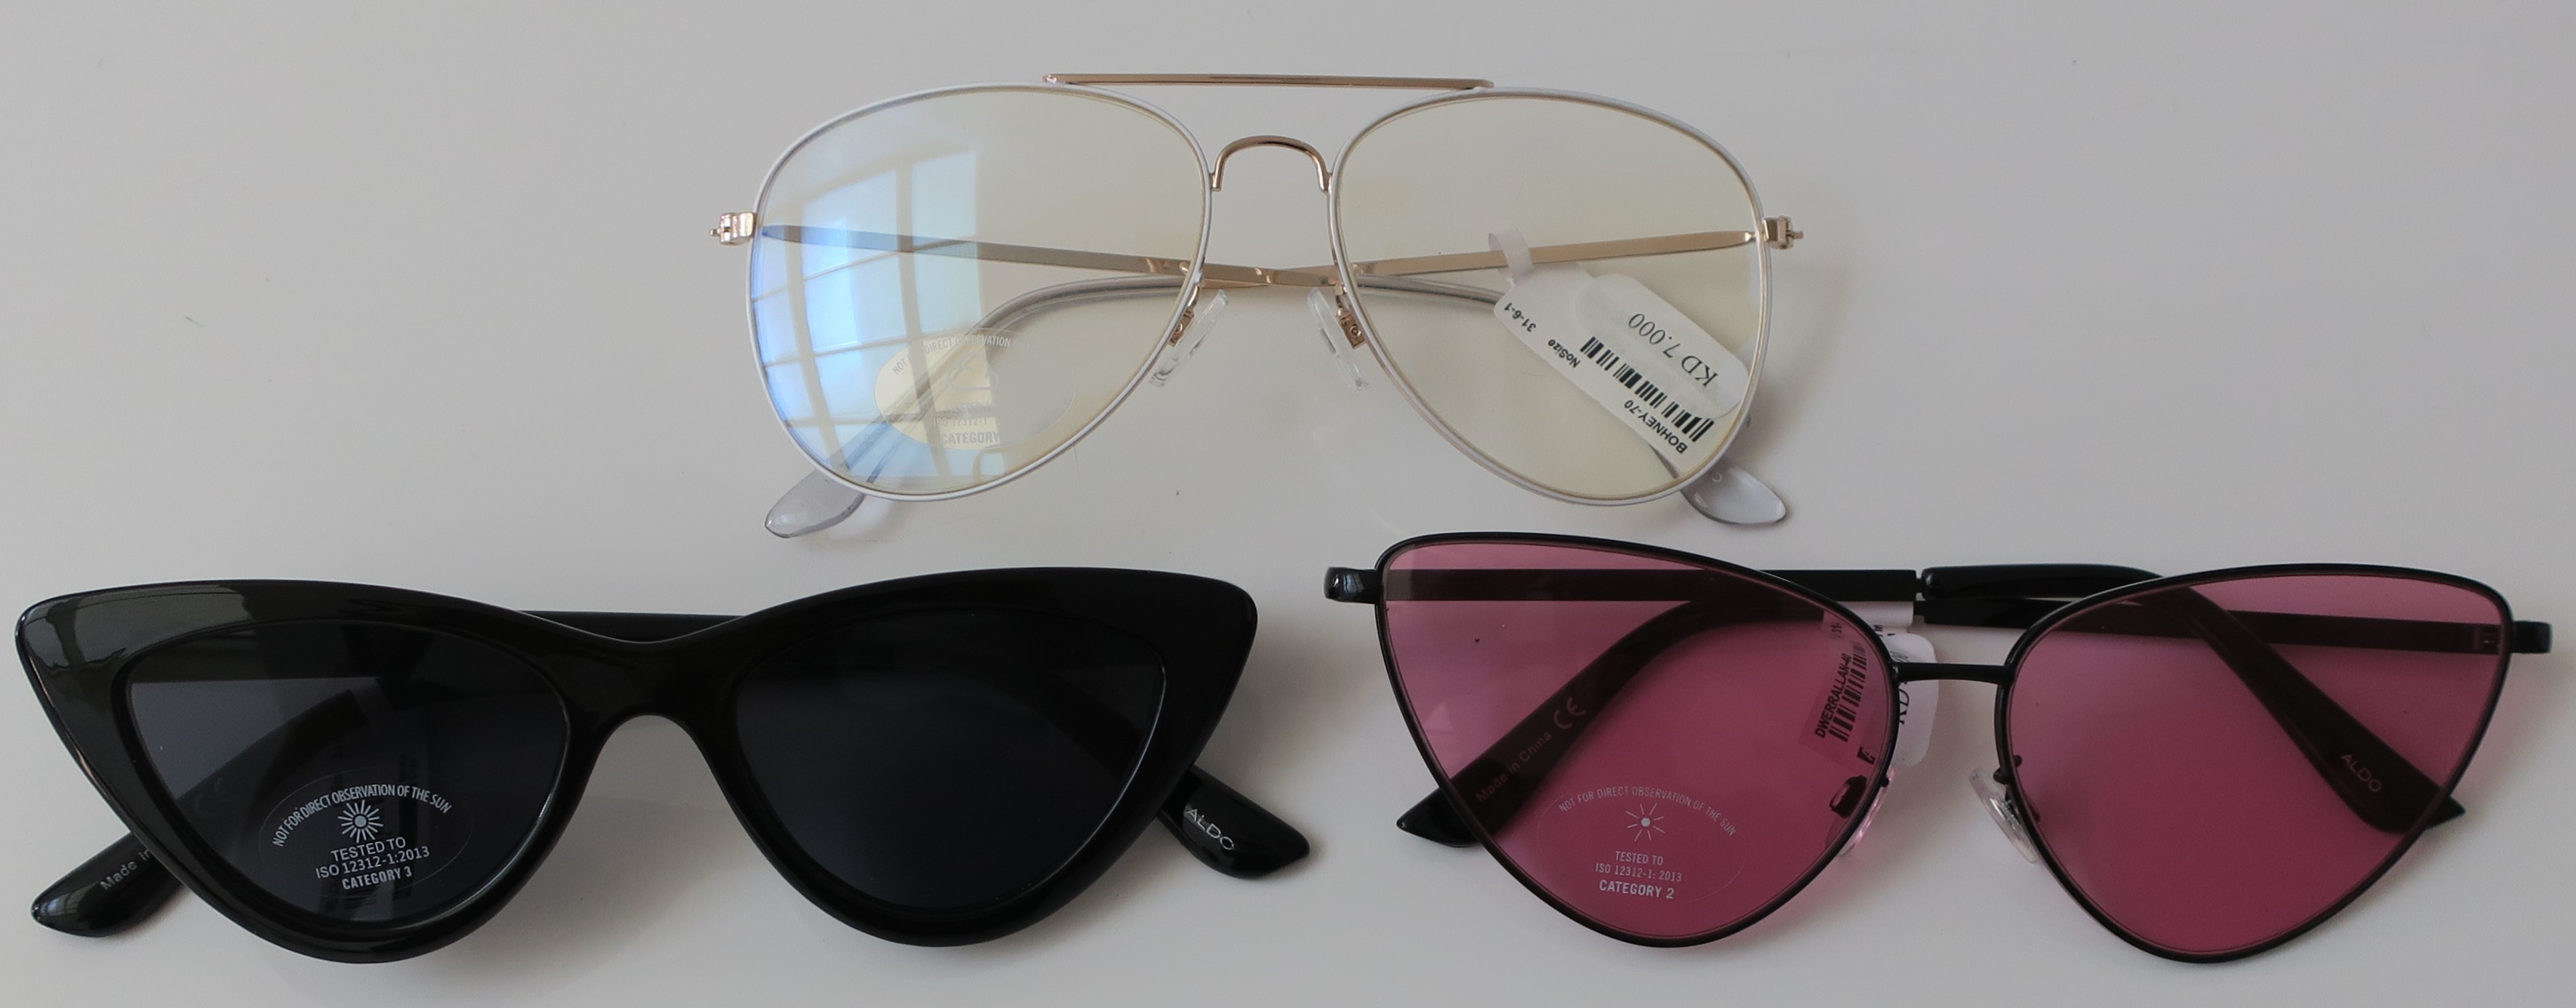 38ebb9b3517e One of the Sunglasses I got was yet another pair of Clear Aviators (so  cool!) while the other two were Cat Eyes (current trend) including one of  those ...